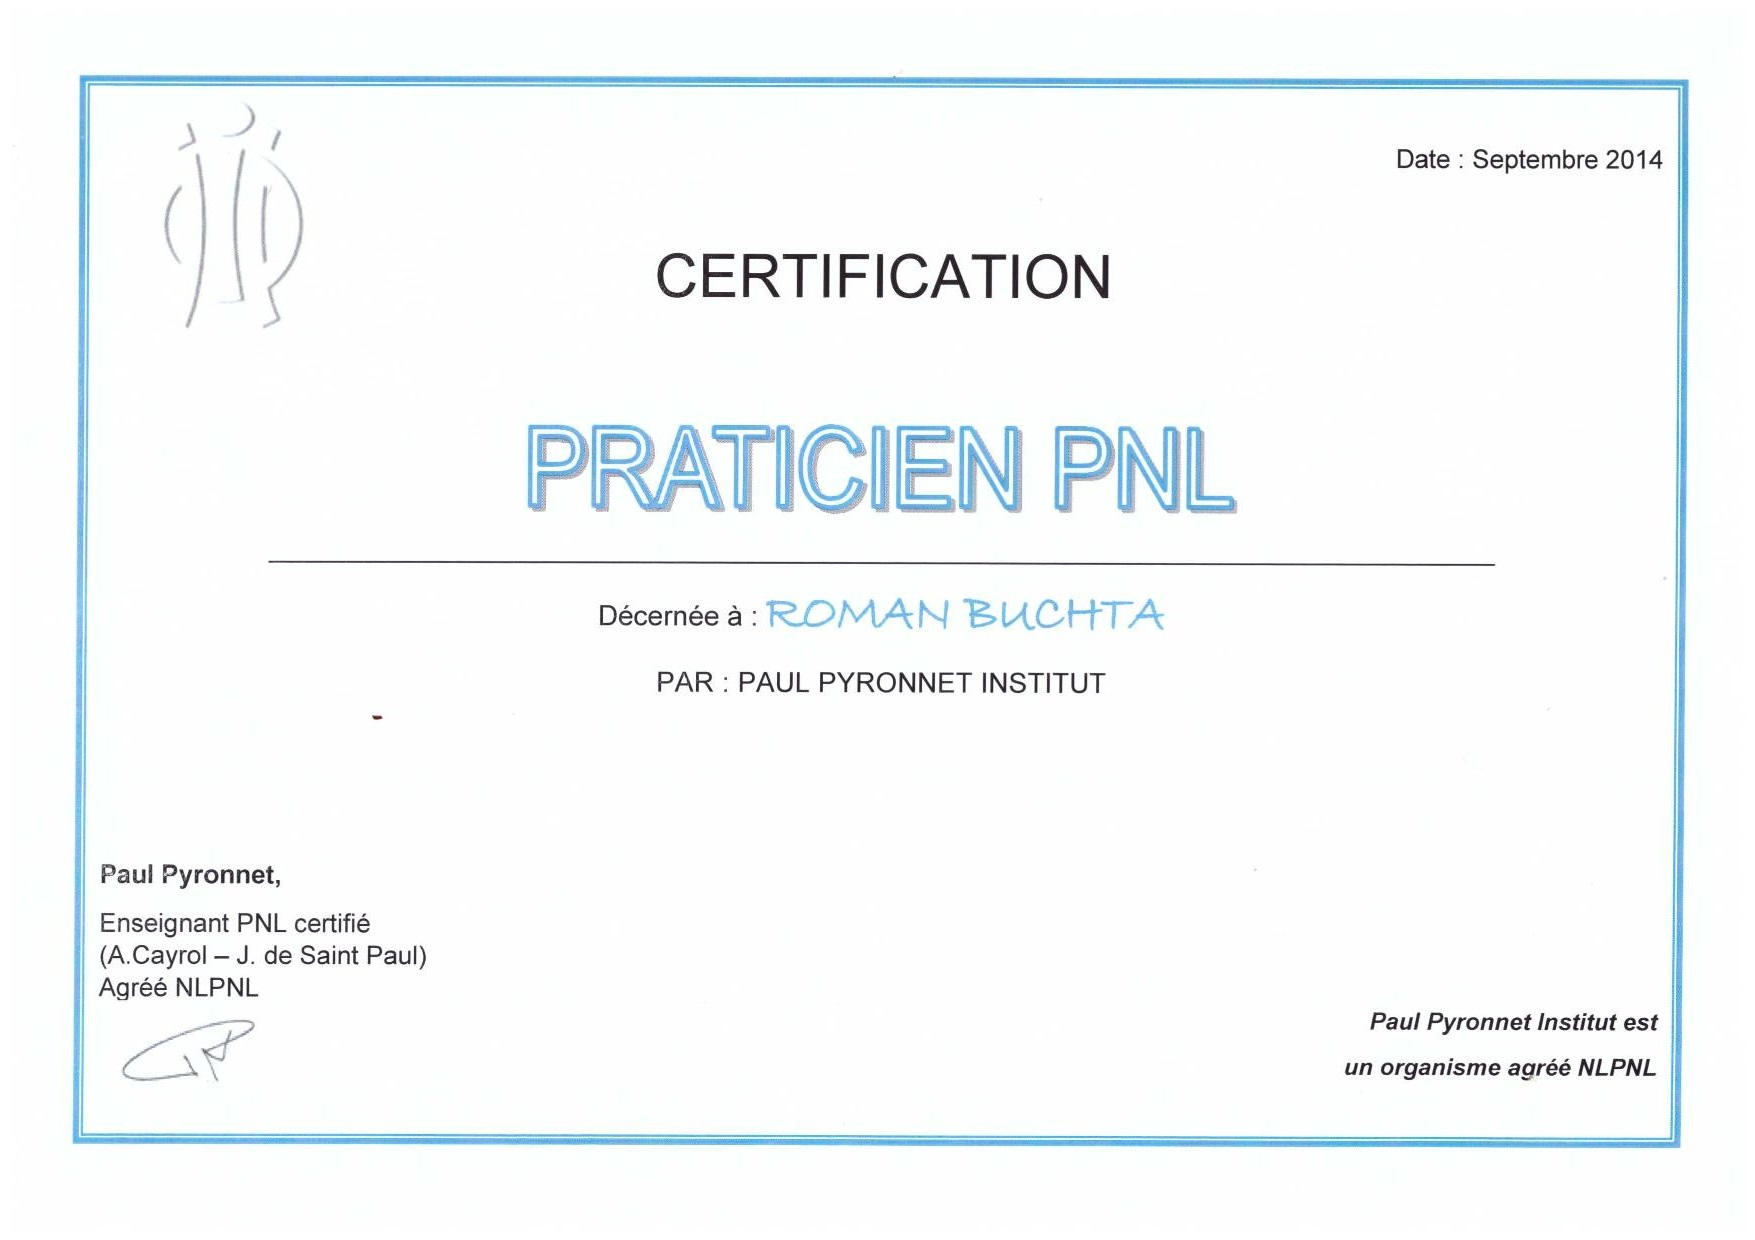 Certification-Praticien-Programation Neurolinguistique-Roman-Buchta